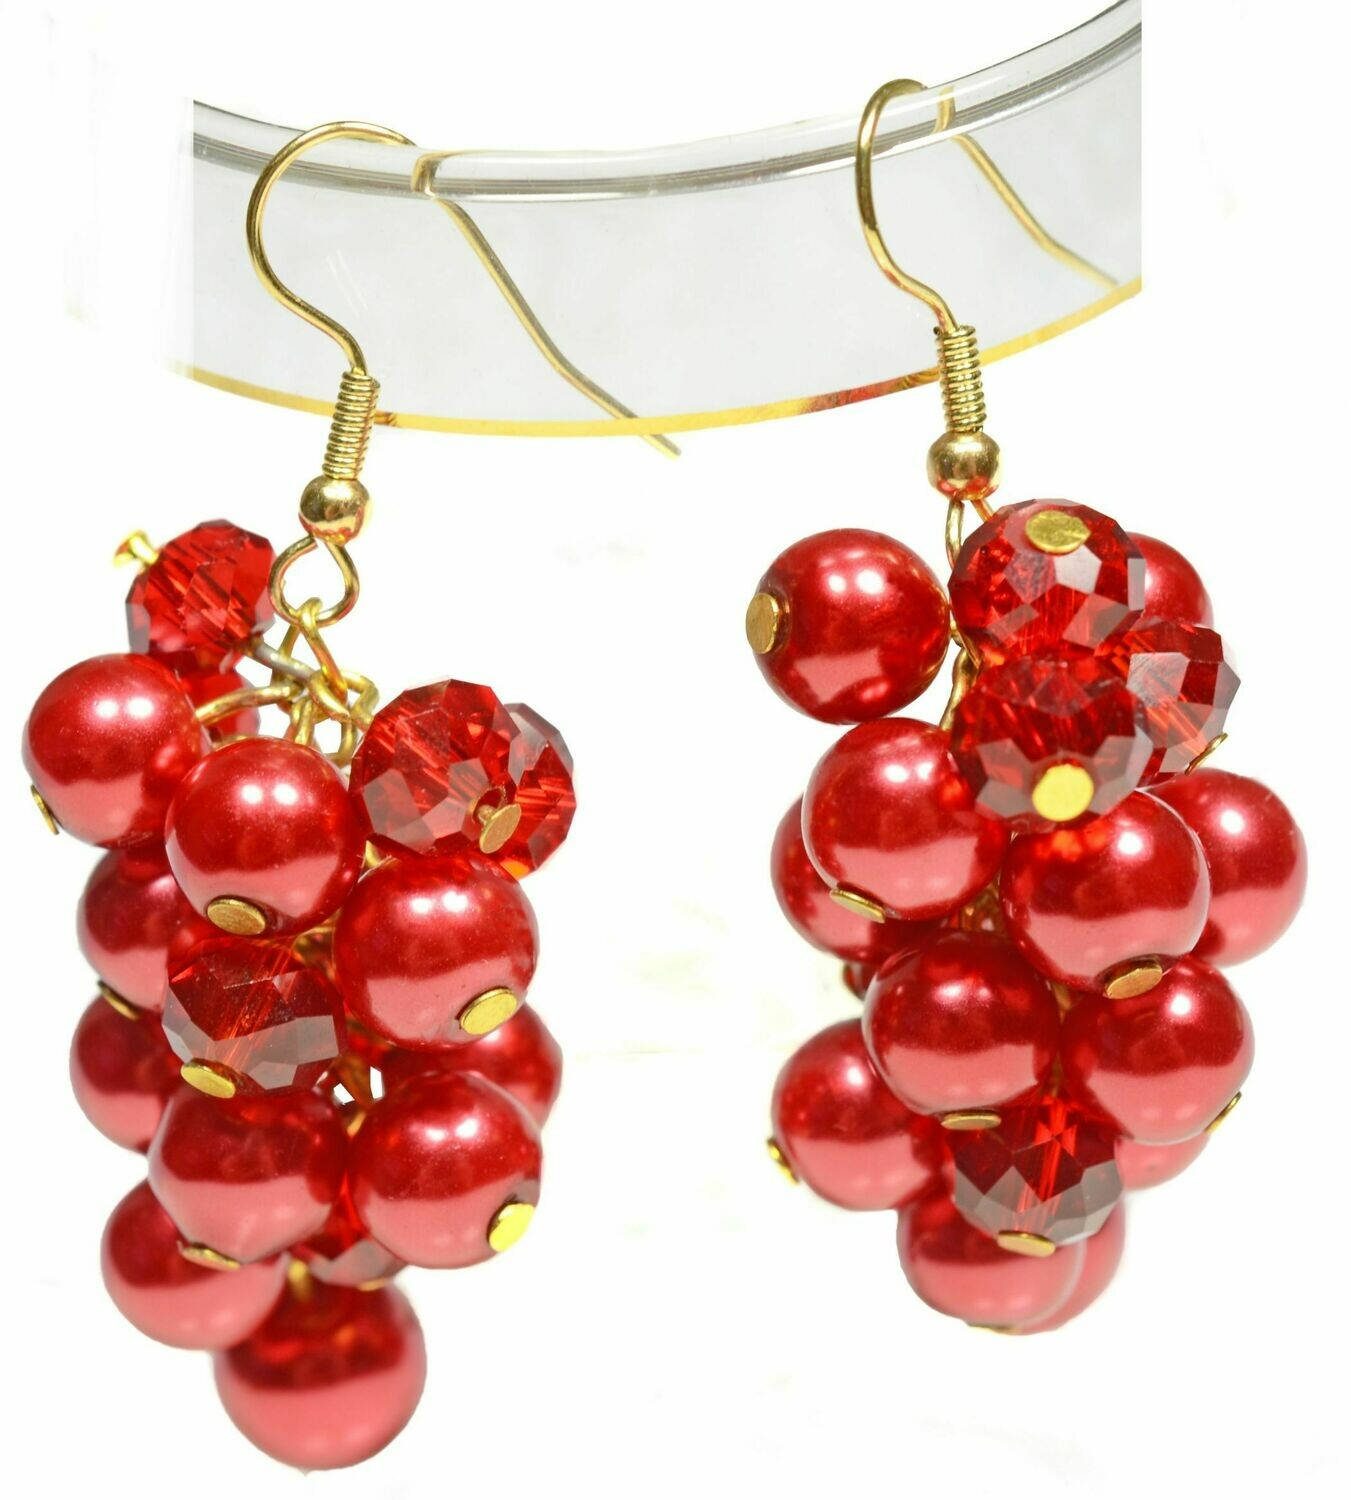 Red hot pearls & ruby red crystal earrings - Scarlett Cocktail Bridesmaids Prom Wedding Party beach holiday jewellery UK Gemstoneriver